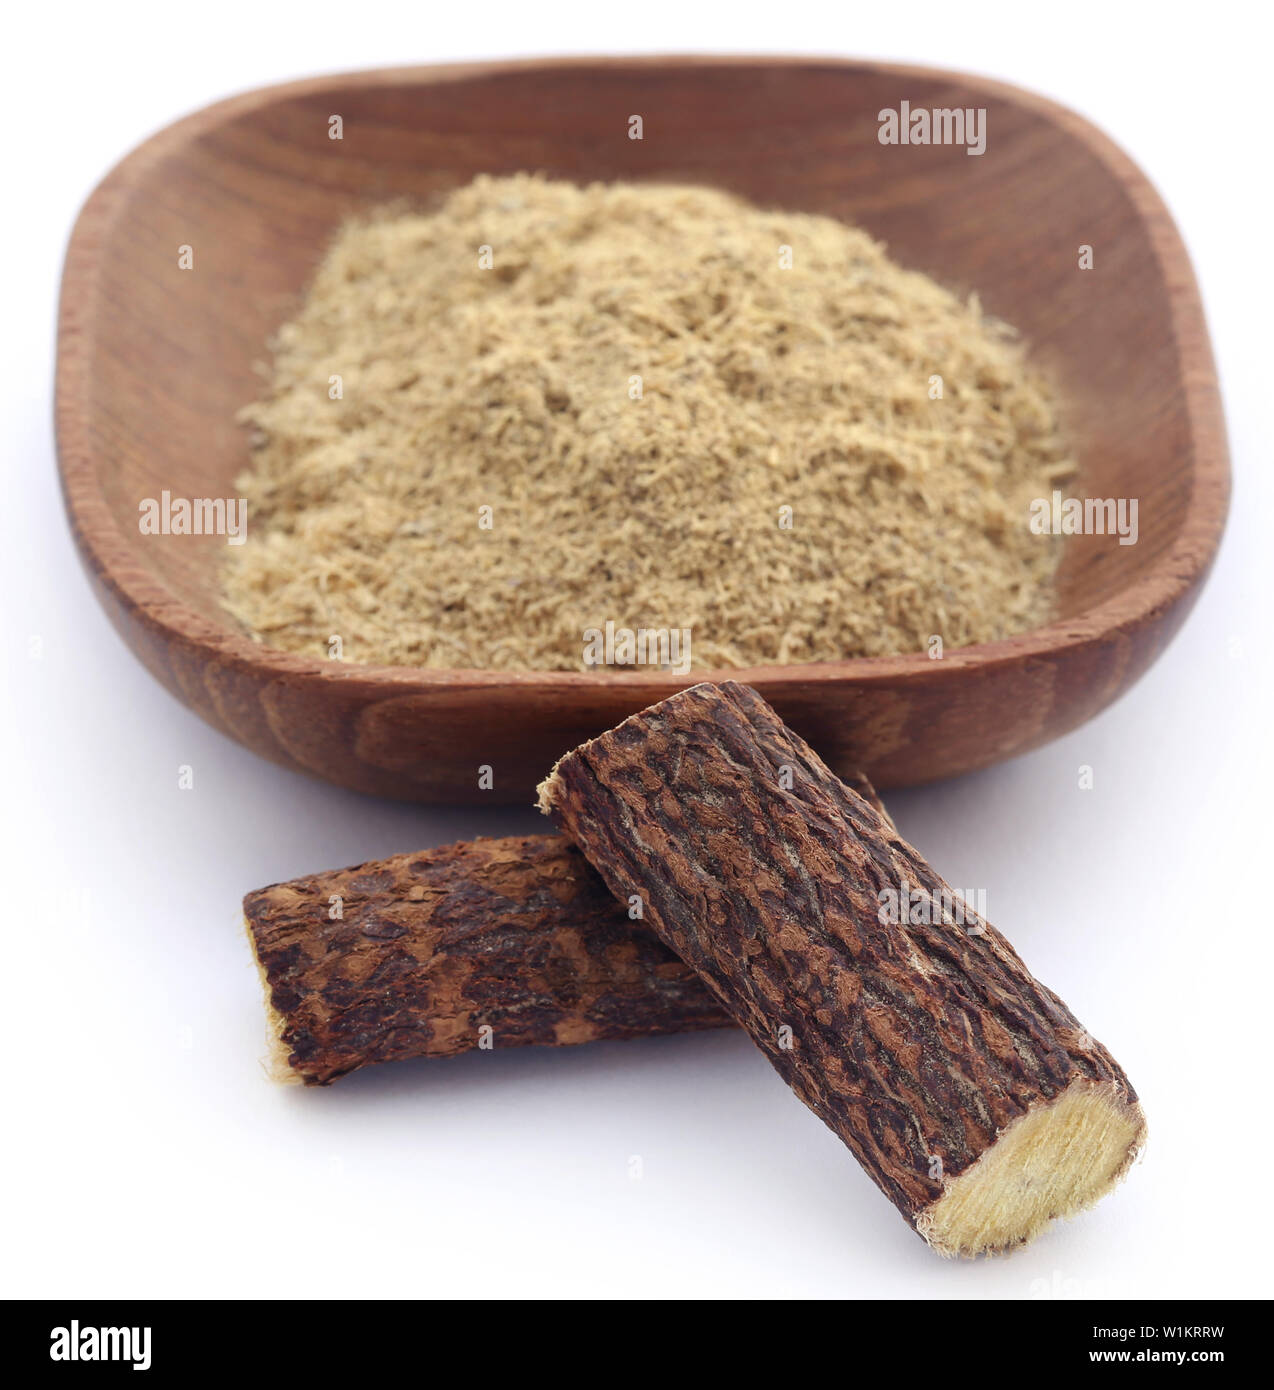 Liquorice stick and ground in a bowl over white - Stock Image